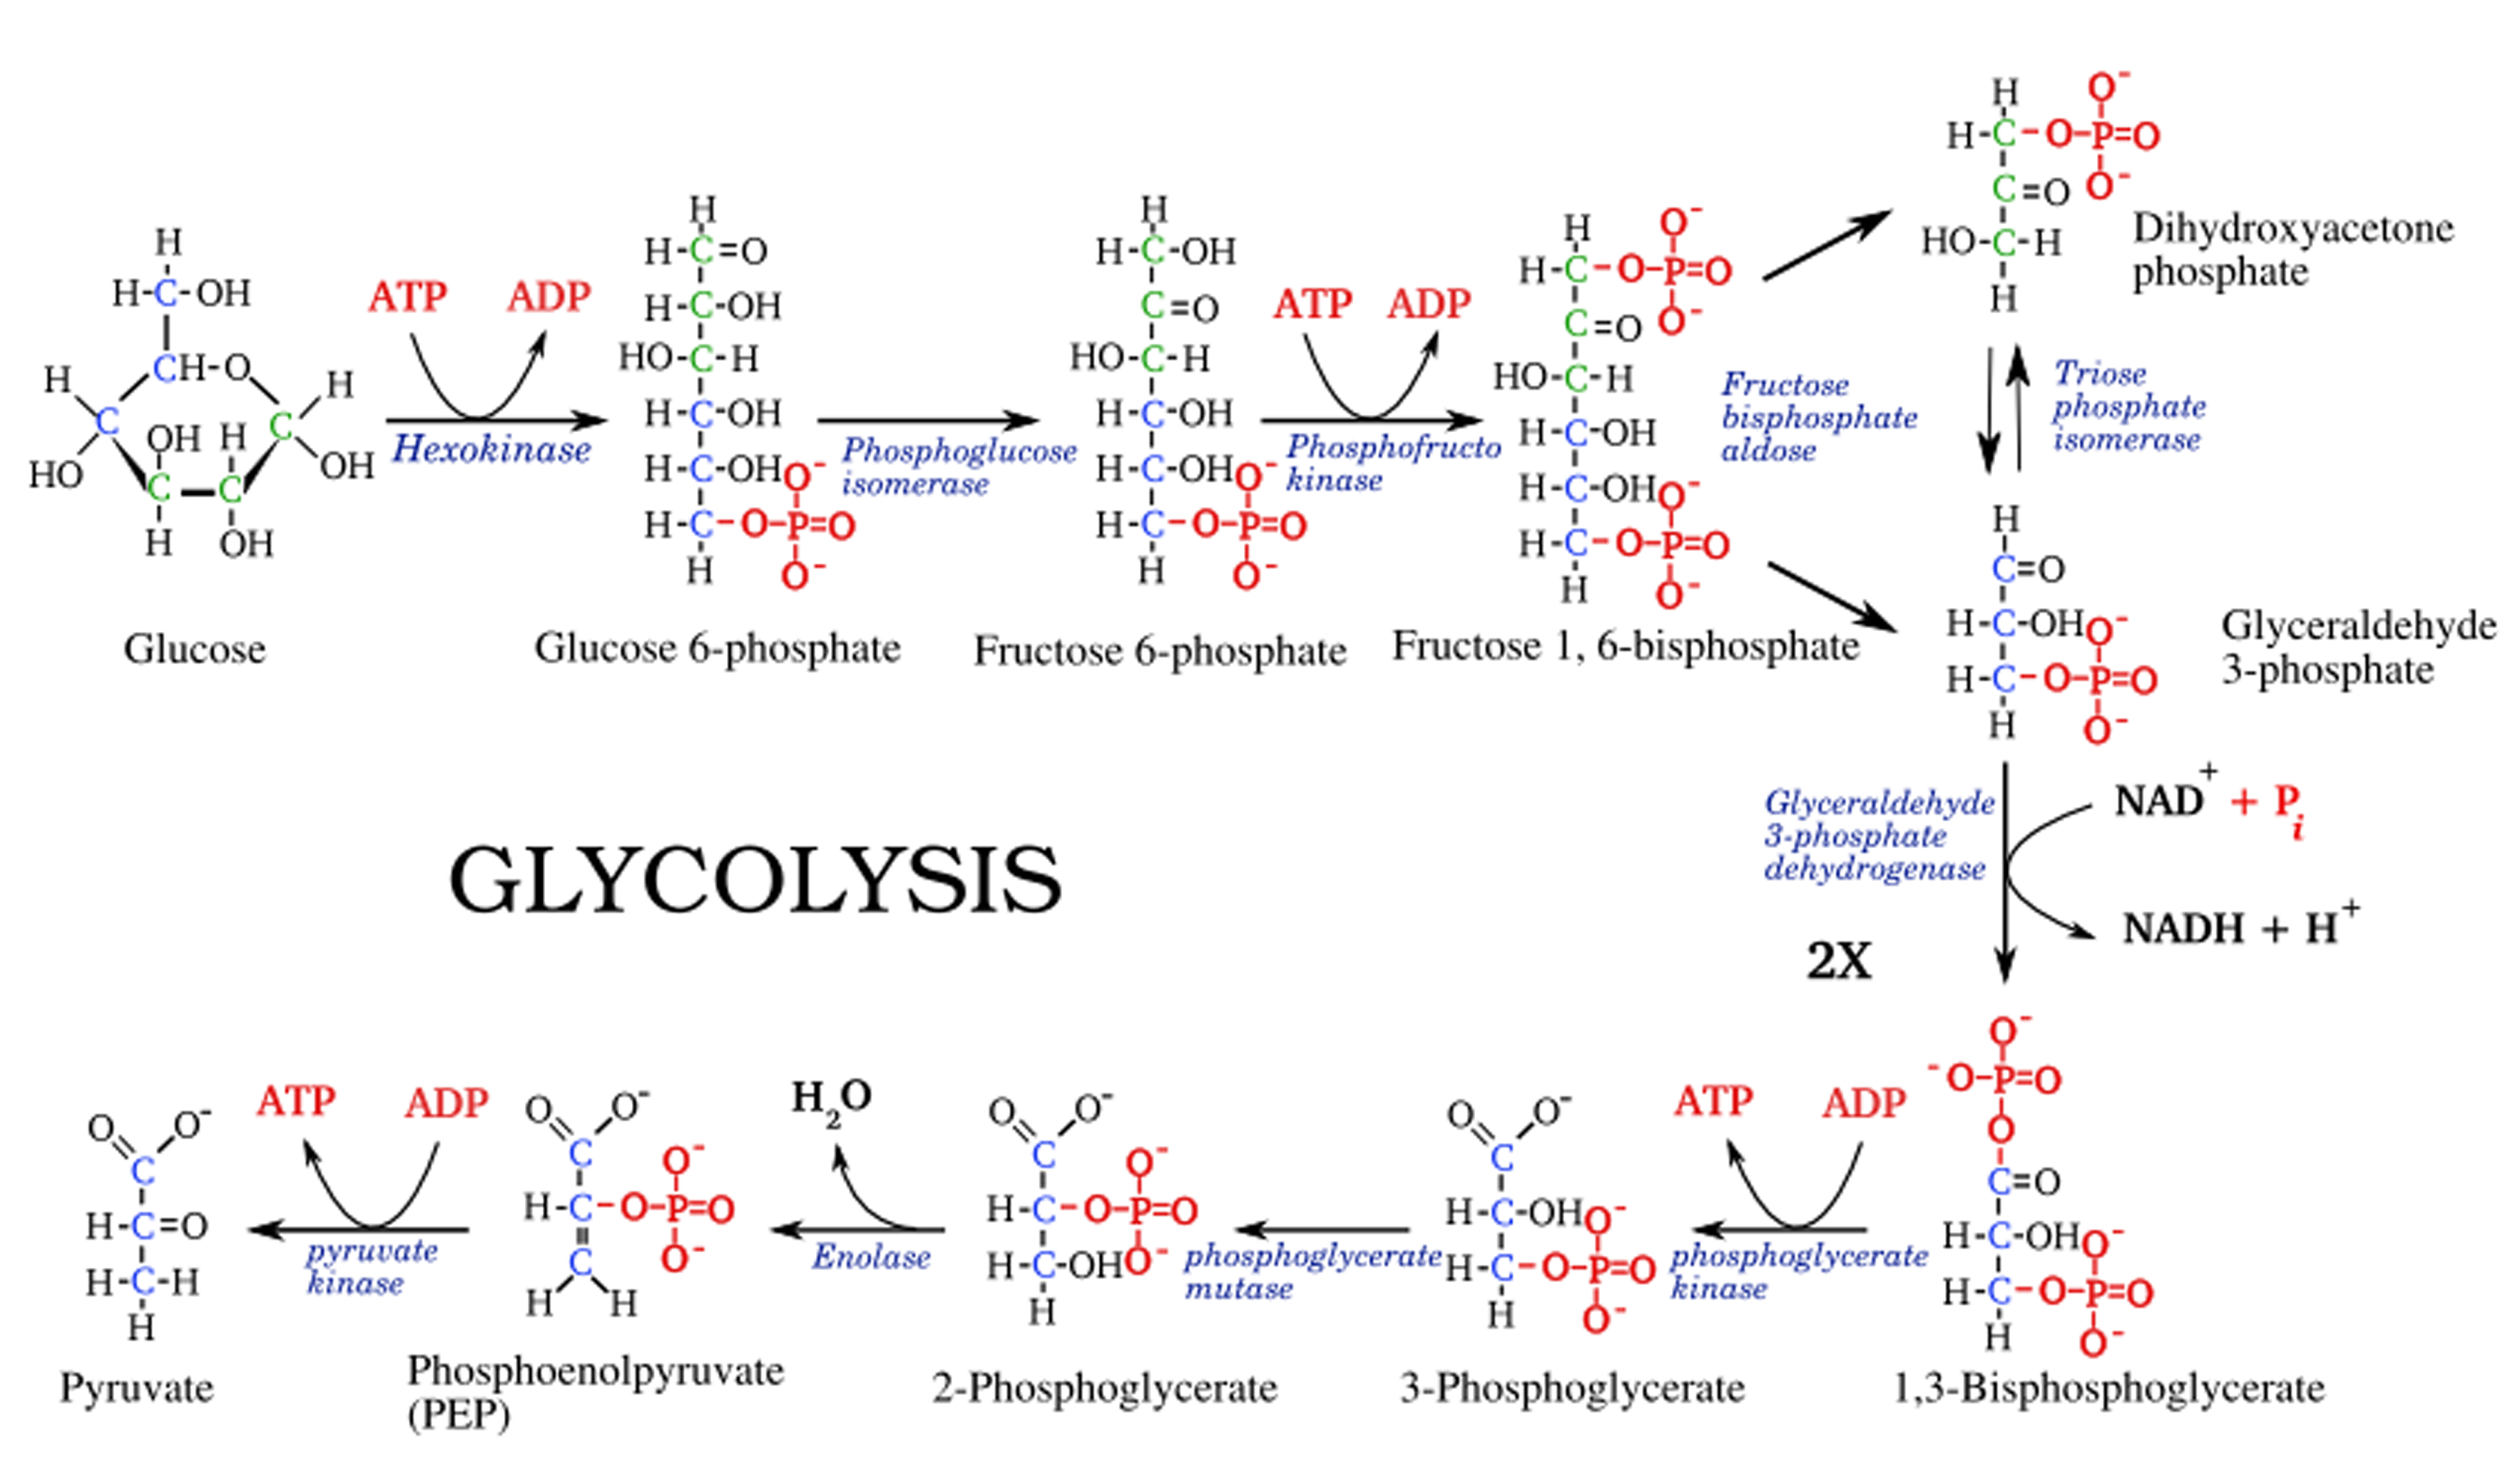 enzymatic diagram of glycolysis glycolysis steps  diagram and enzymes involved online biology notes  glycolysis steps  diagram and enzymes